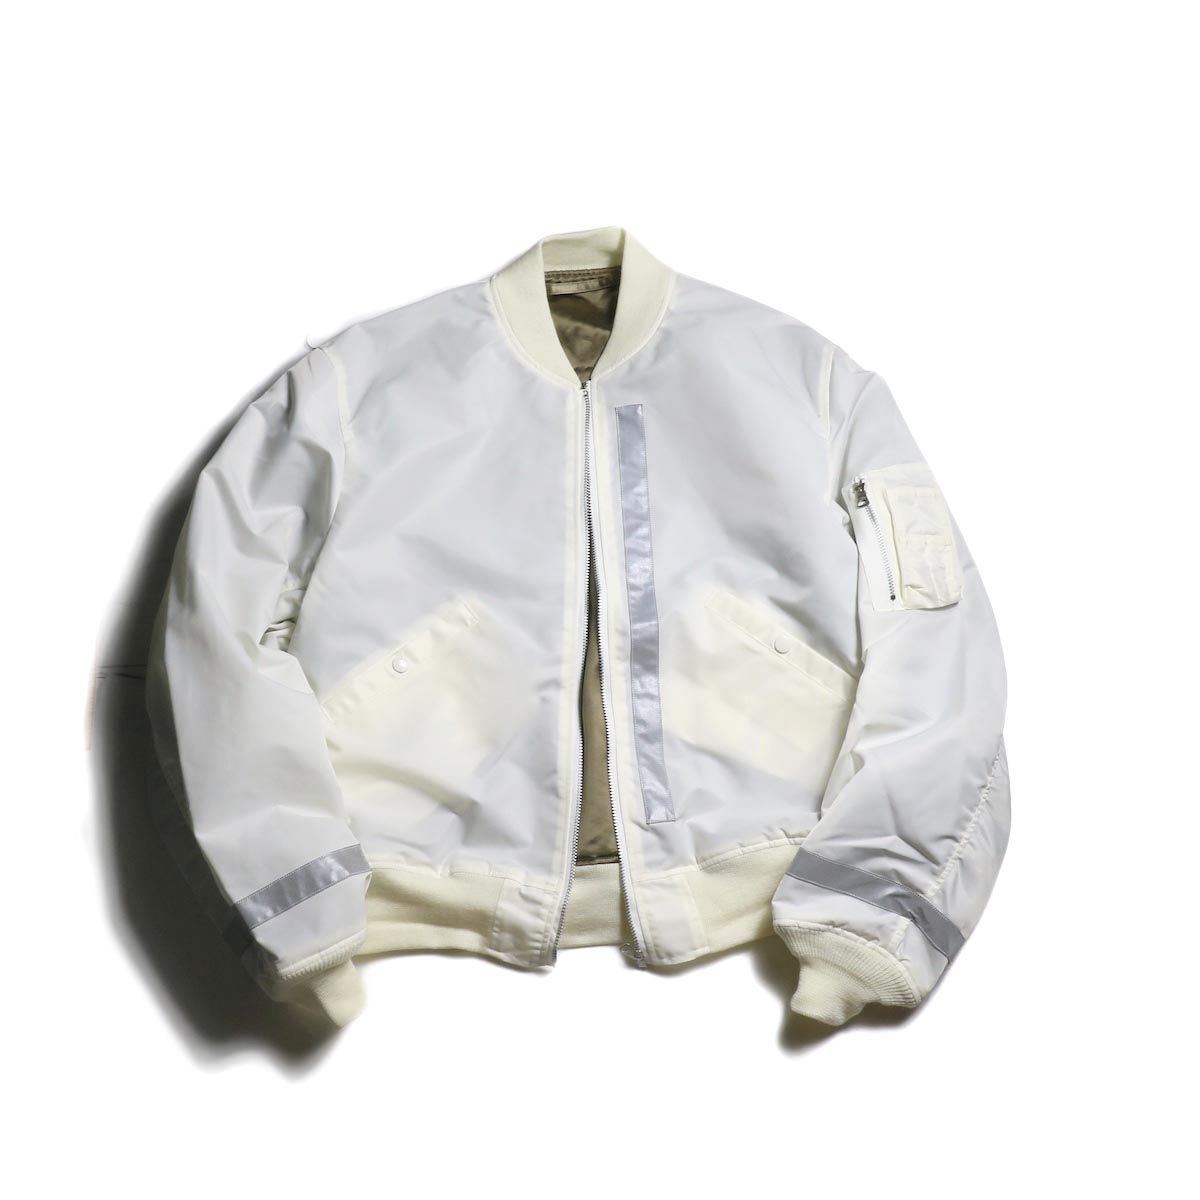 UNUSED × BUZZ RICKSON'S / US1640 Reversible Flight Jacket (White)